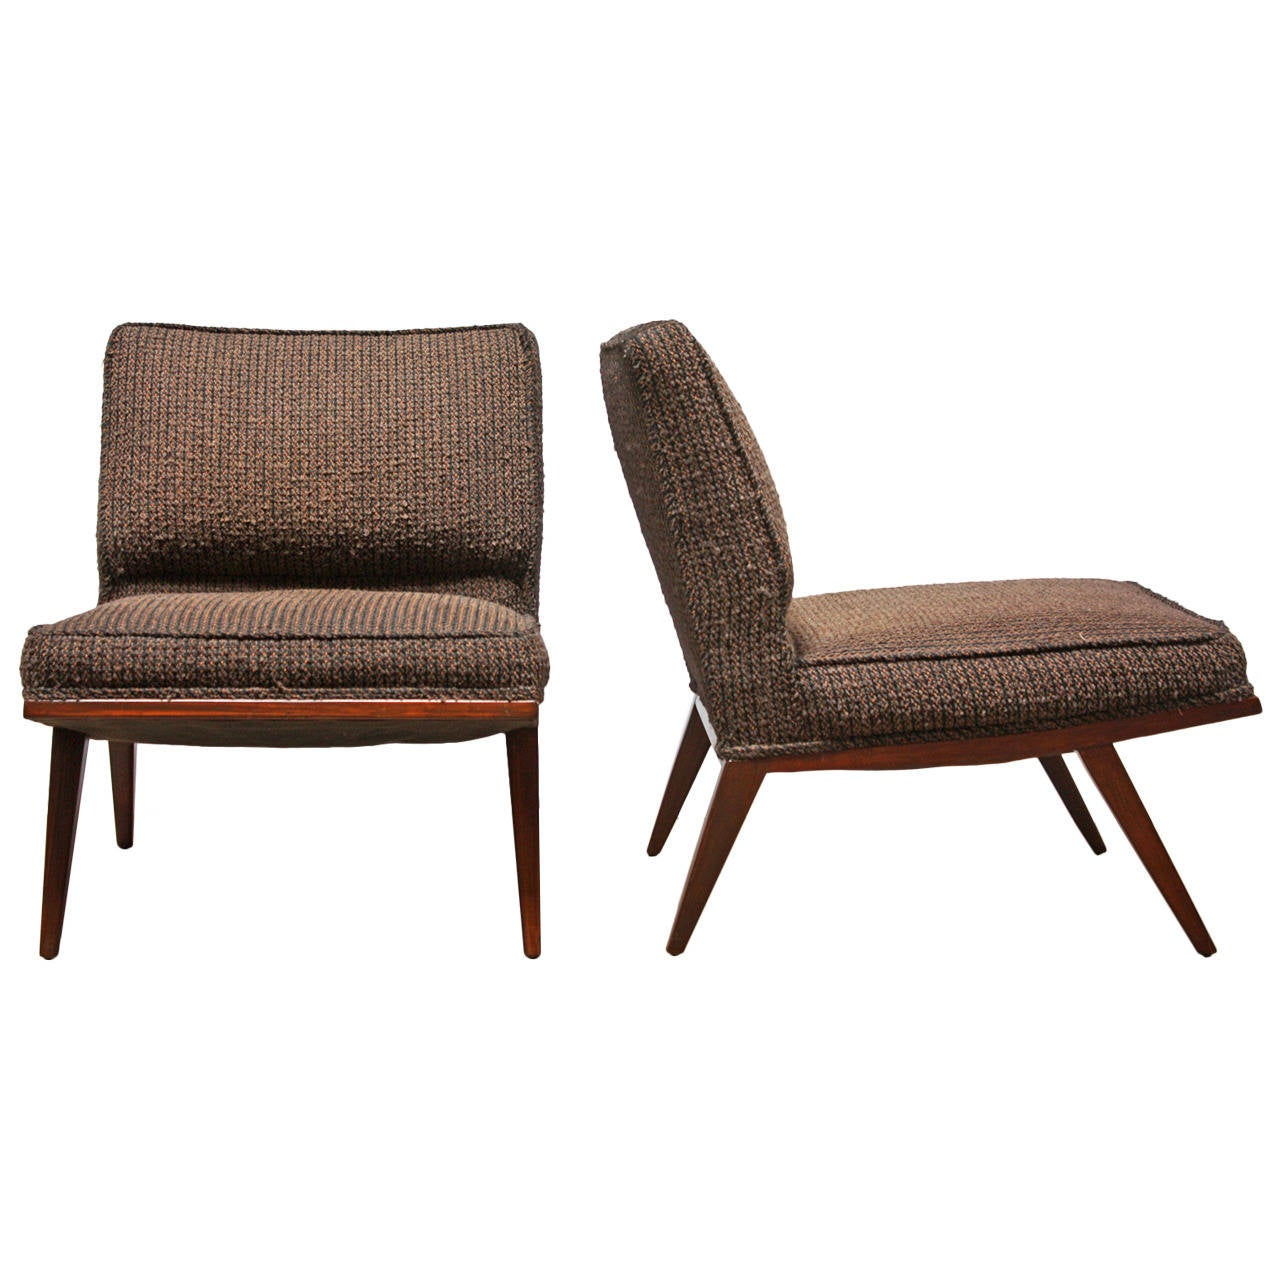 Pair of Lounge or Slipper Chairs Attributed to Paul McCobb